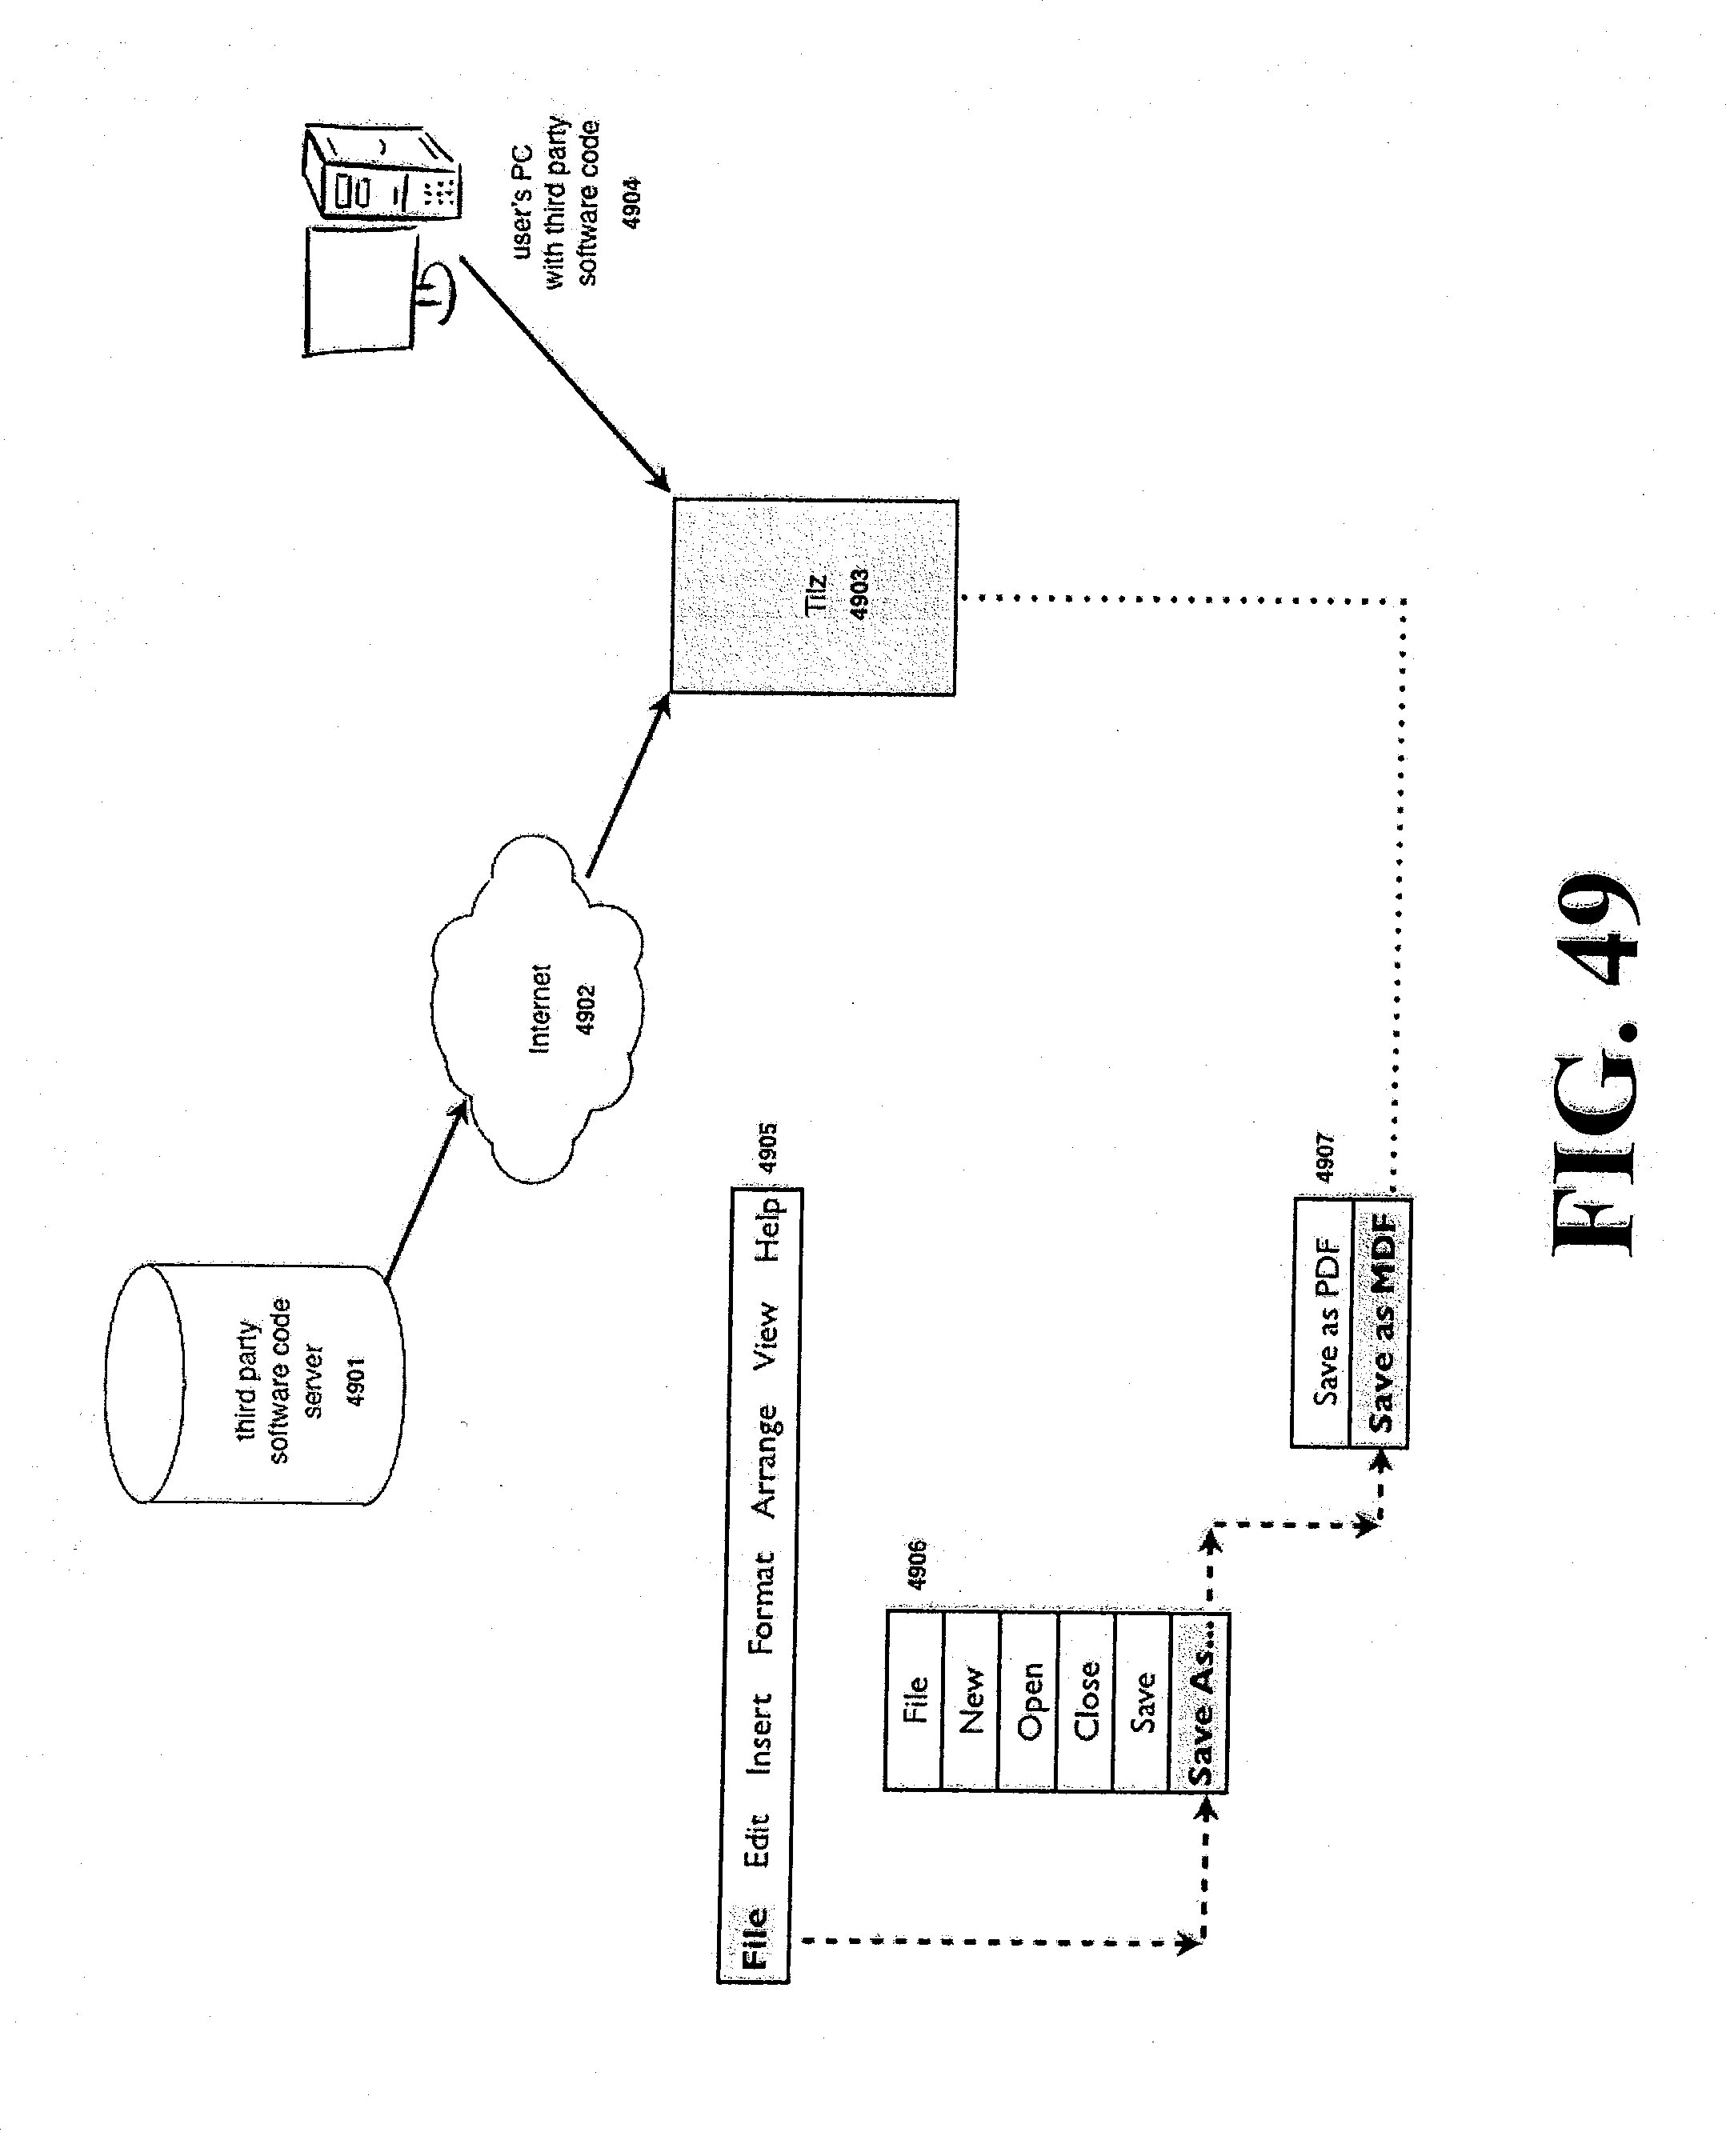 patent us 20120190386a1 TCP IP Cloud petitions